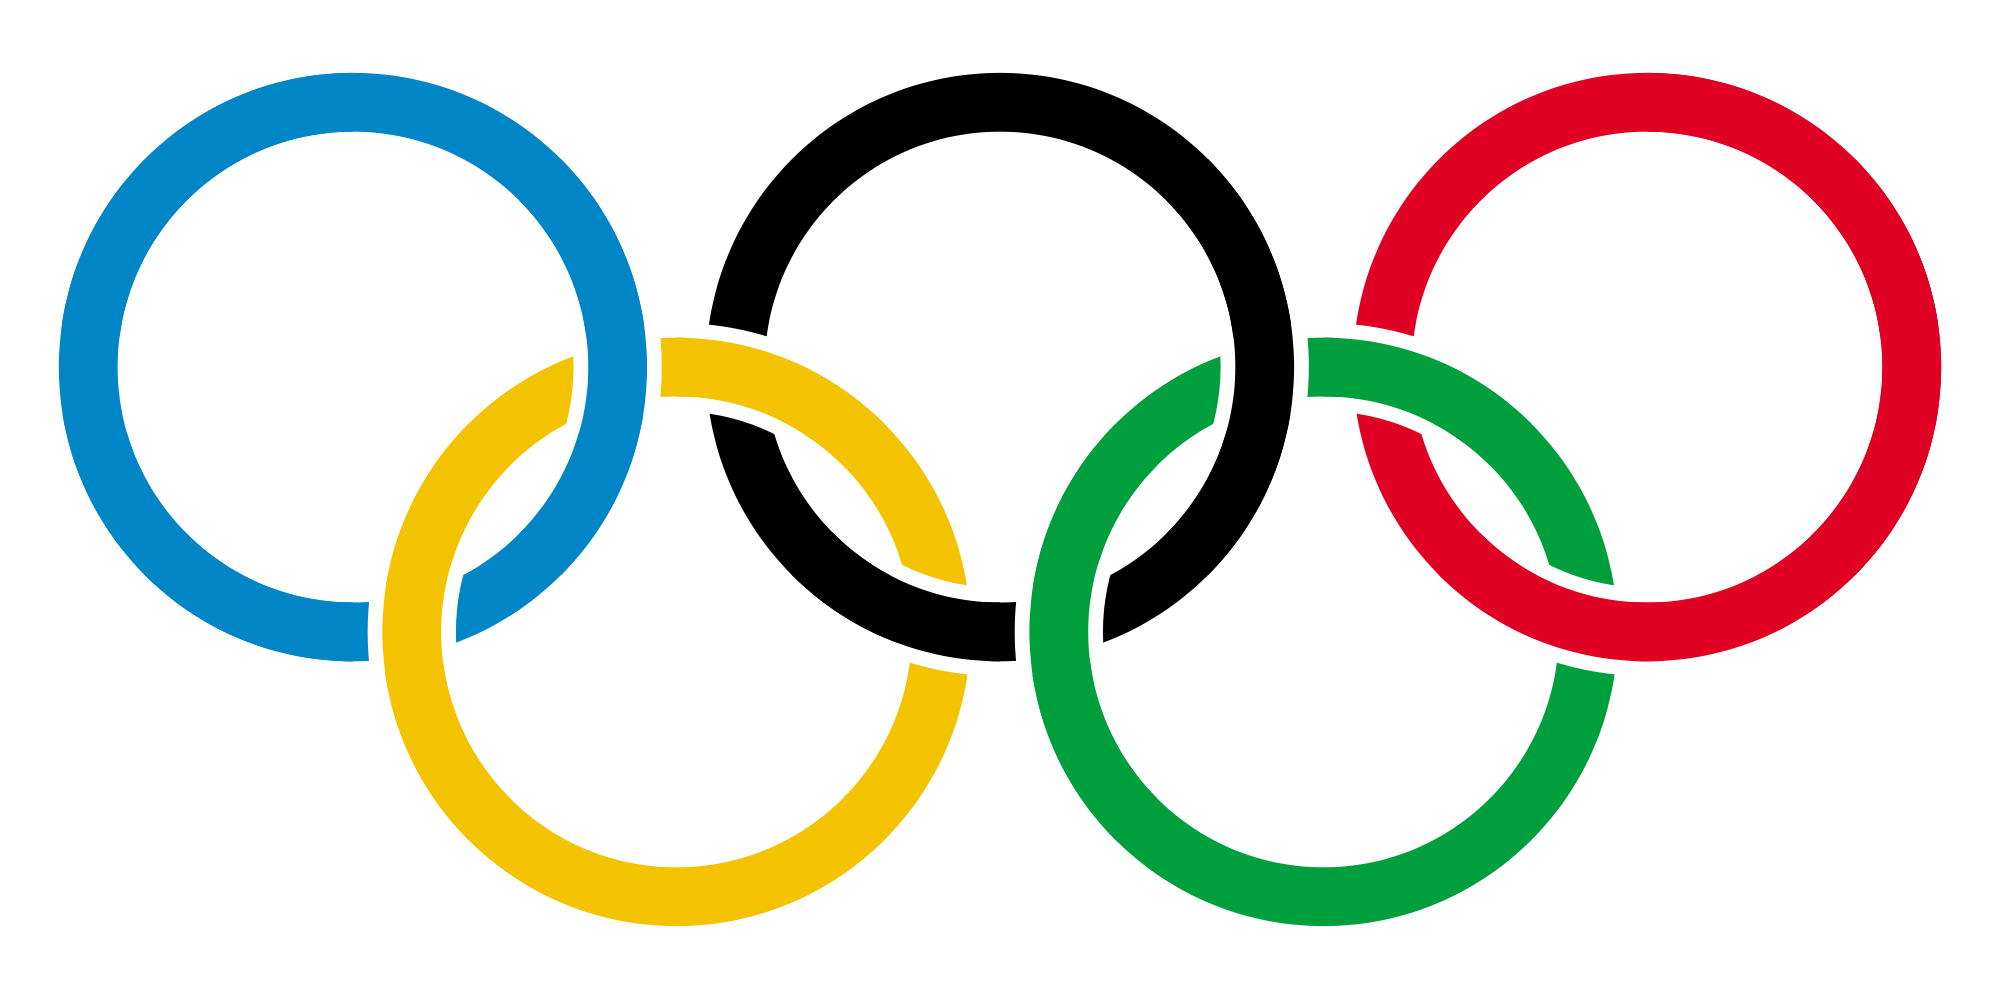 45 Olympic Logos And Symbols From 1924 To 2022